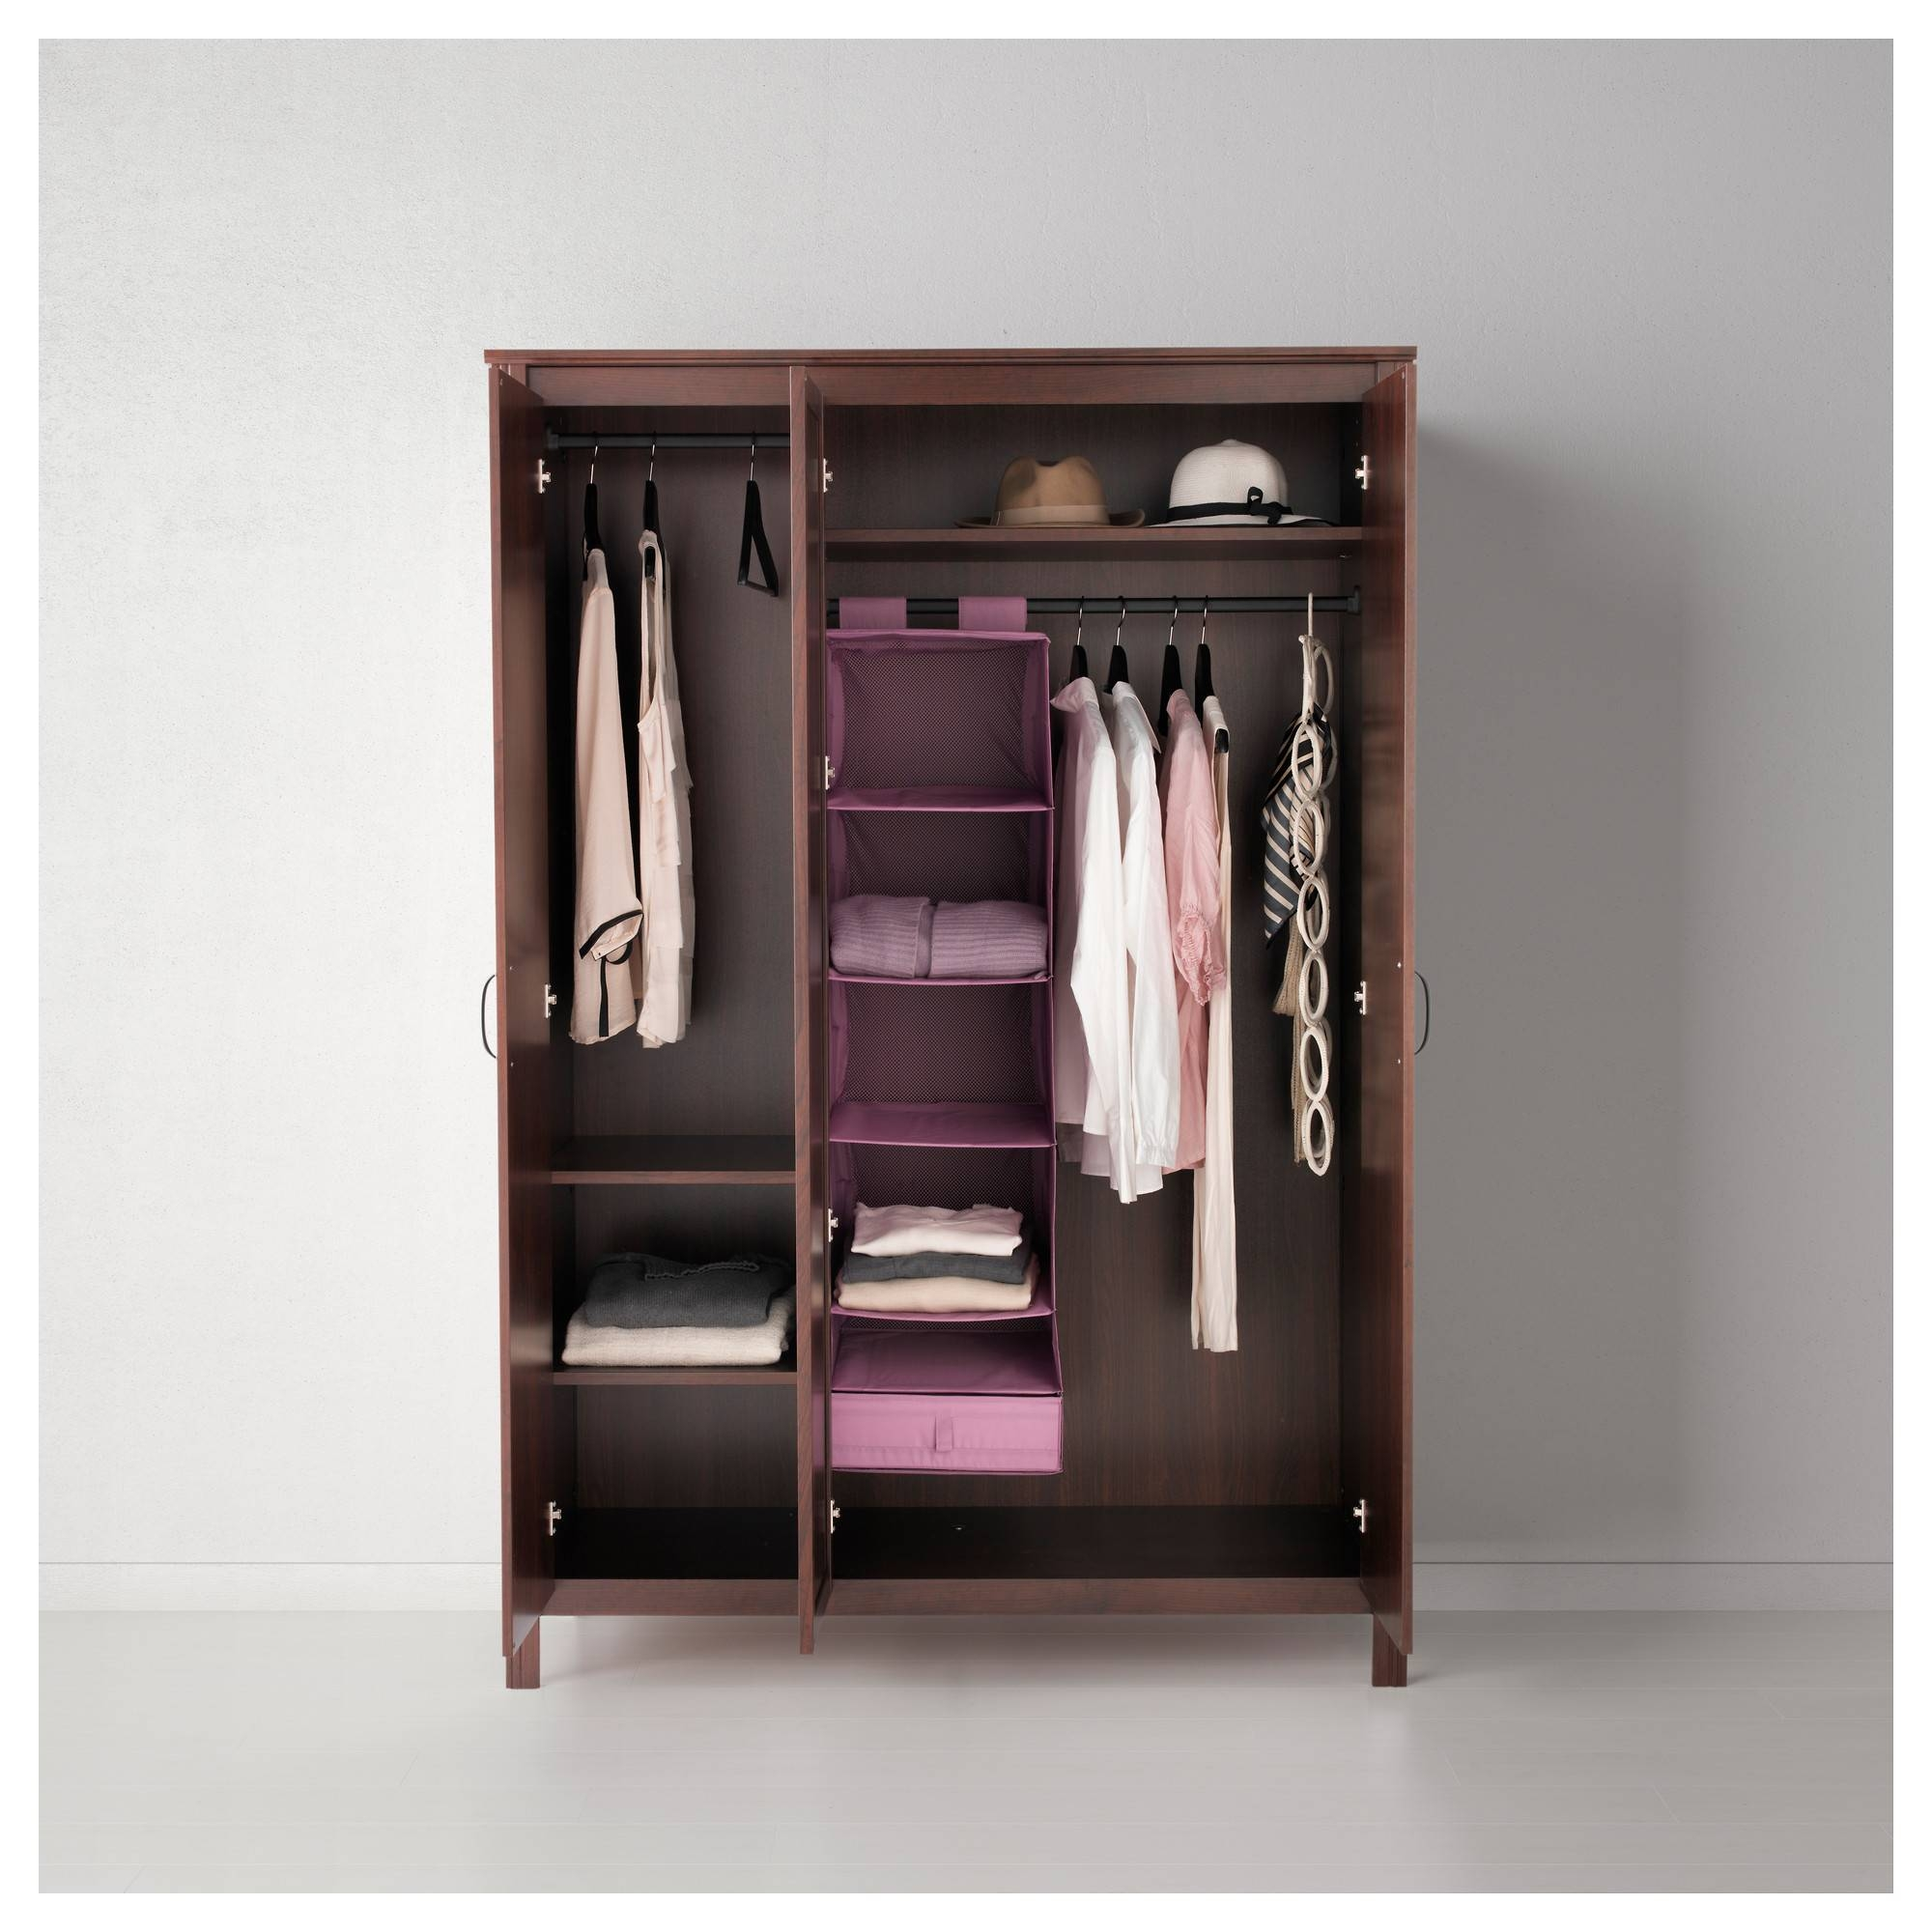 Brusali Wardrobe With 3 Doors - Brown - Ikea with regard to 3 Door Wardrobe With Drawers And Shelves (Image 8 of 30)